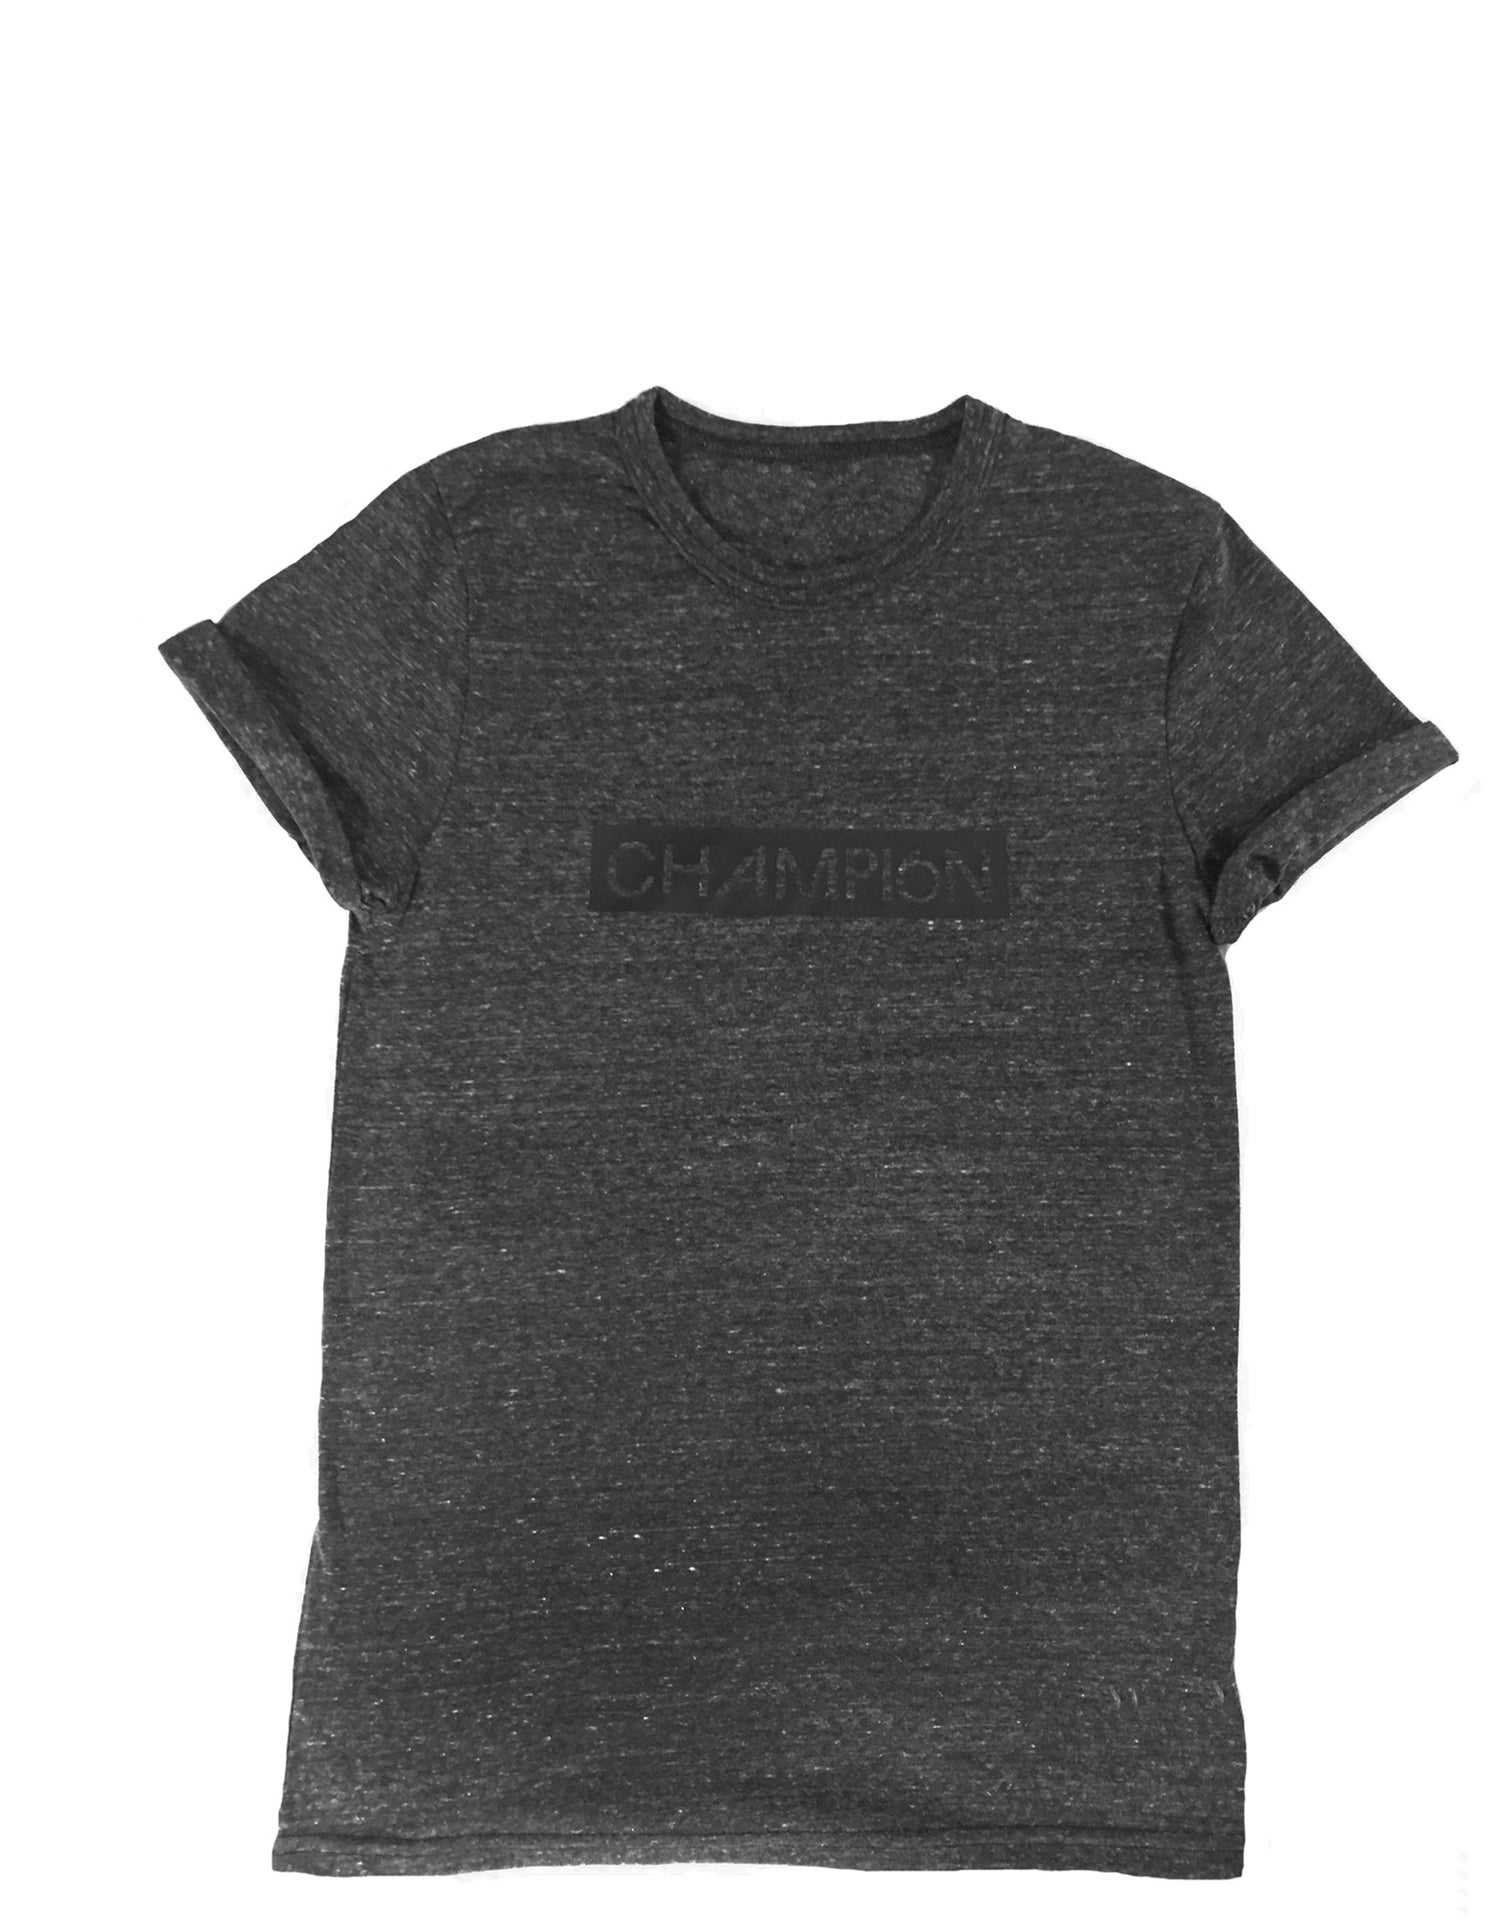 Image of unisex recycled block t-shirt